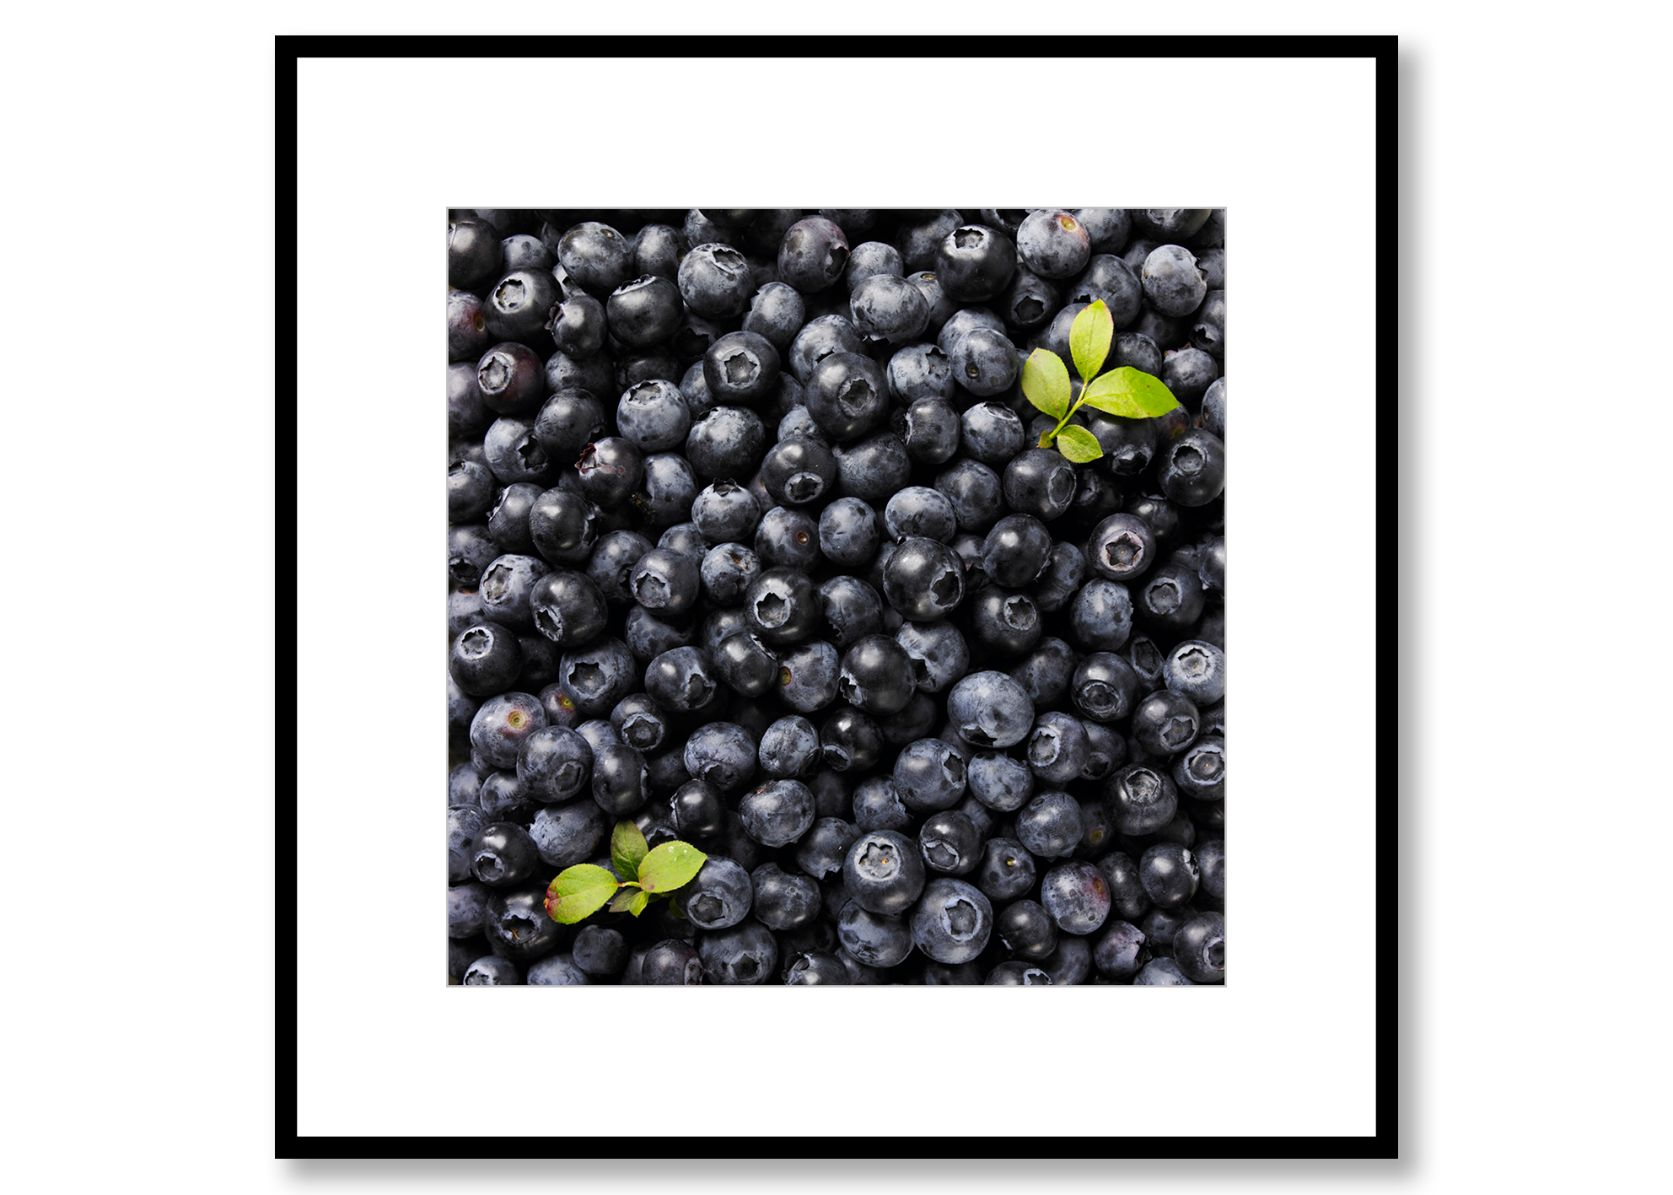 Blueberries. Food Art. Prints for sale. Photo by Fredrik Rege